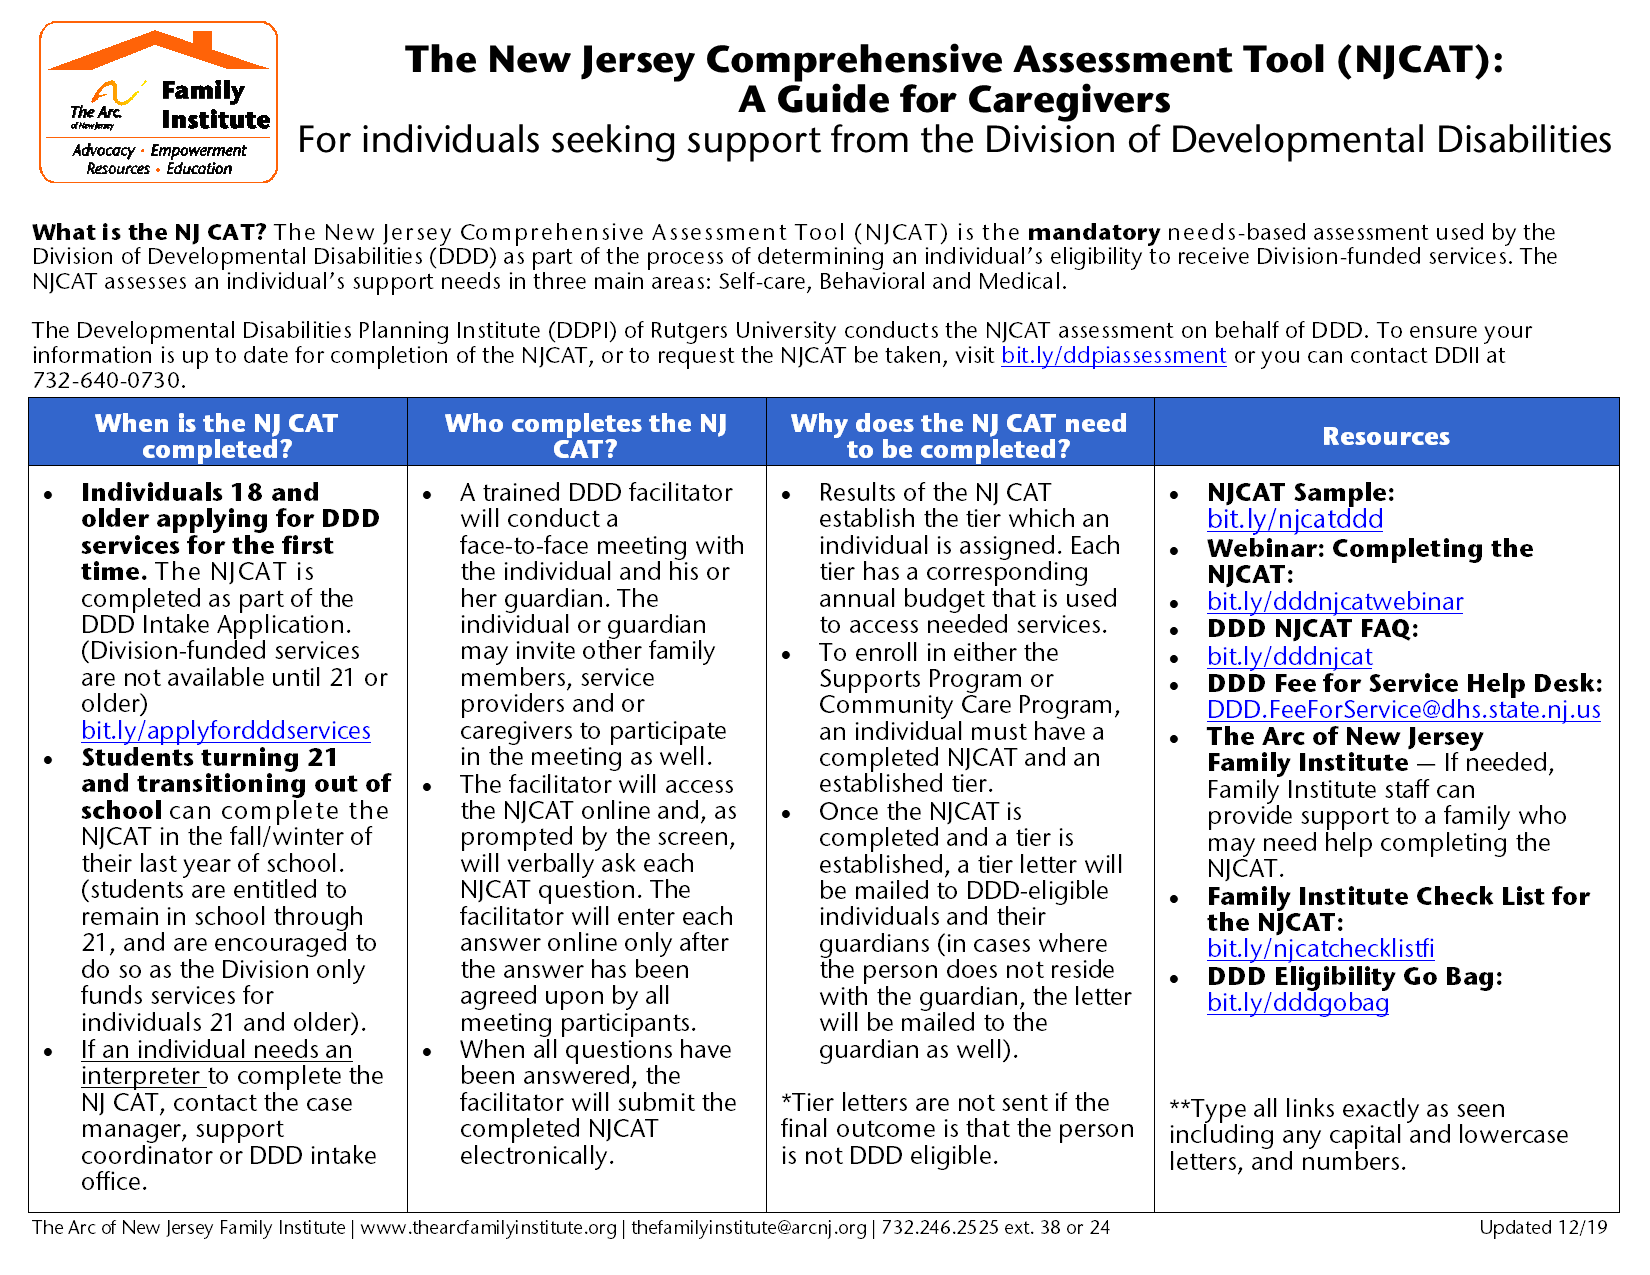 The New Jersey Comprehensive Assessment tool (NJCAT):  A Guide for Caregivers